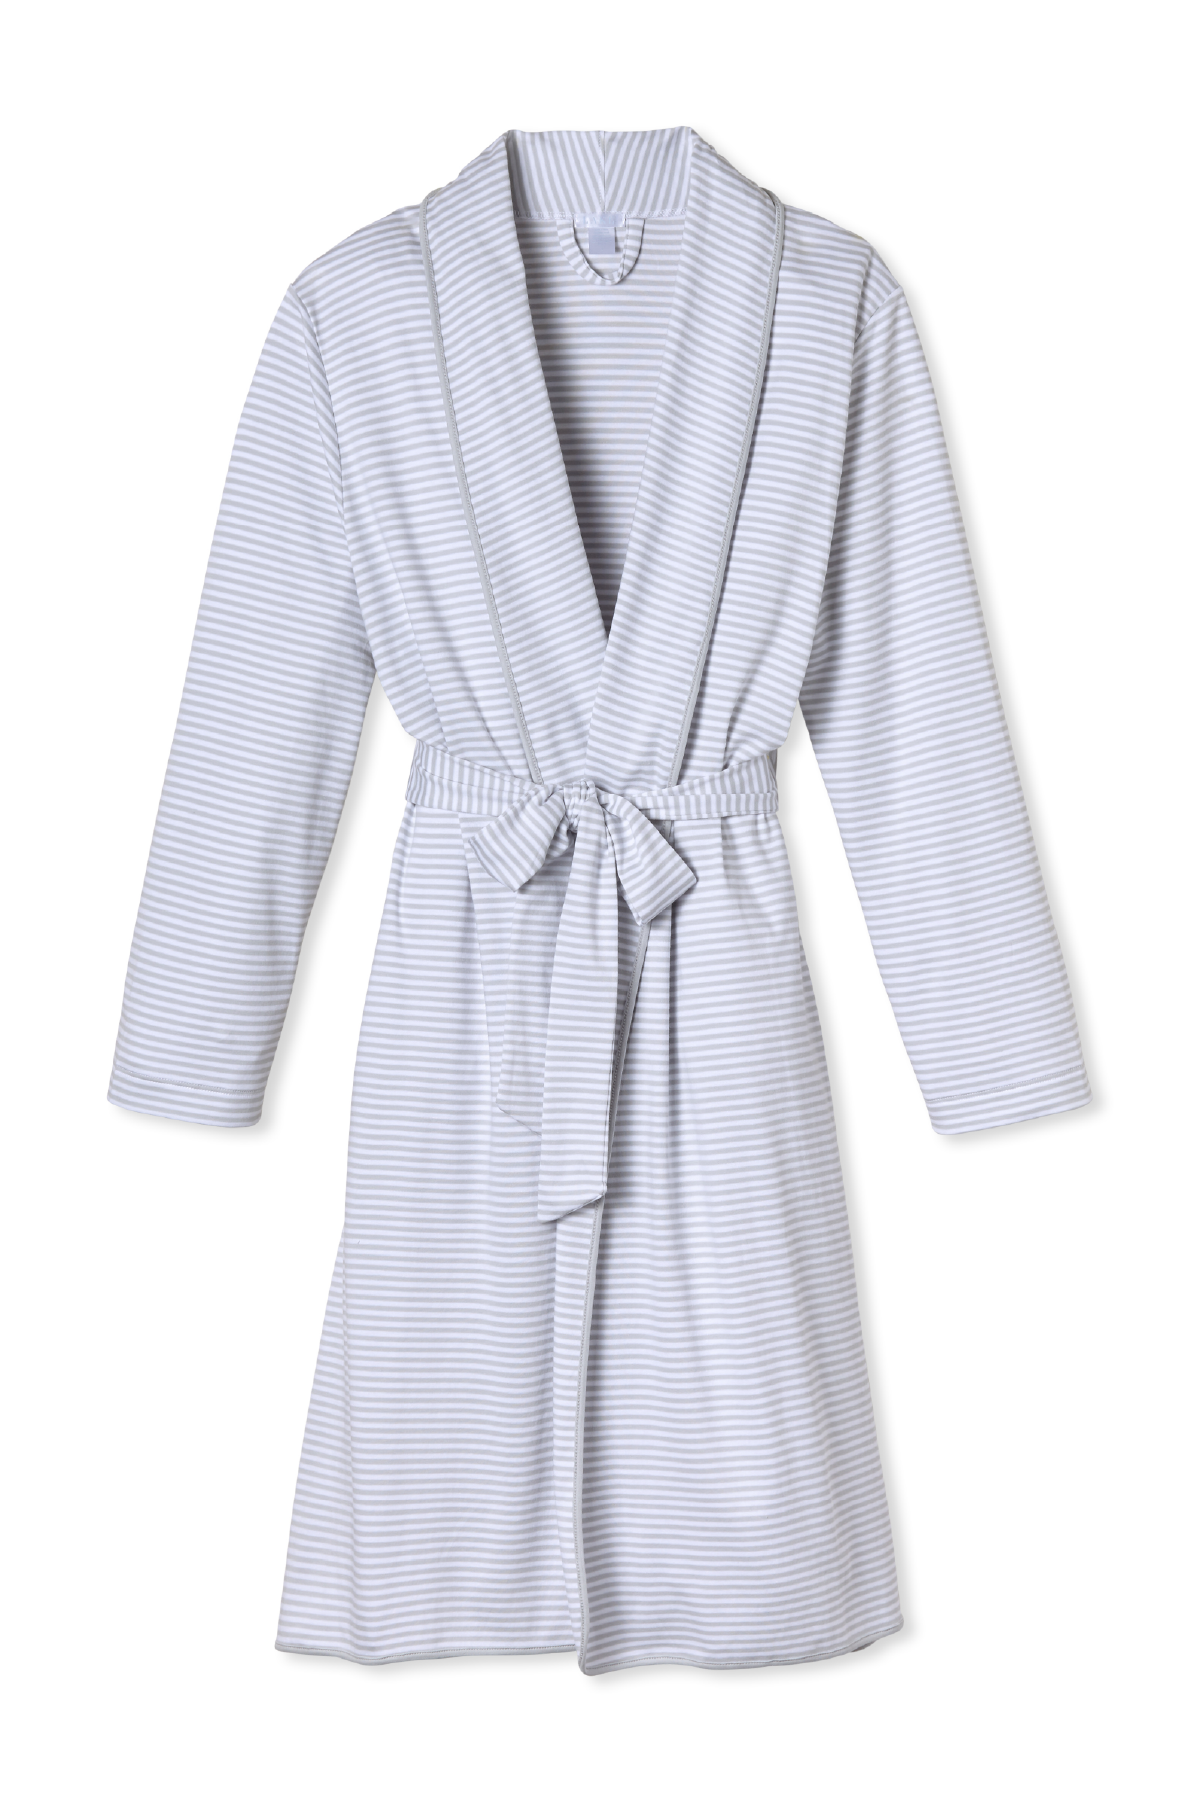 Pima Robe in Gray